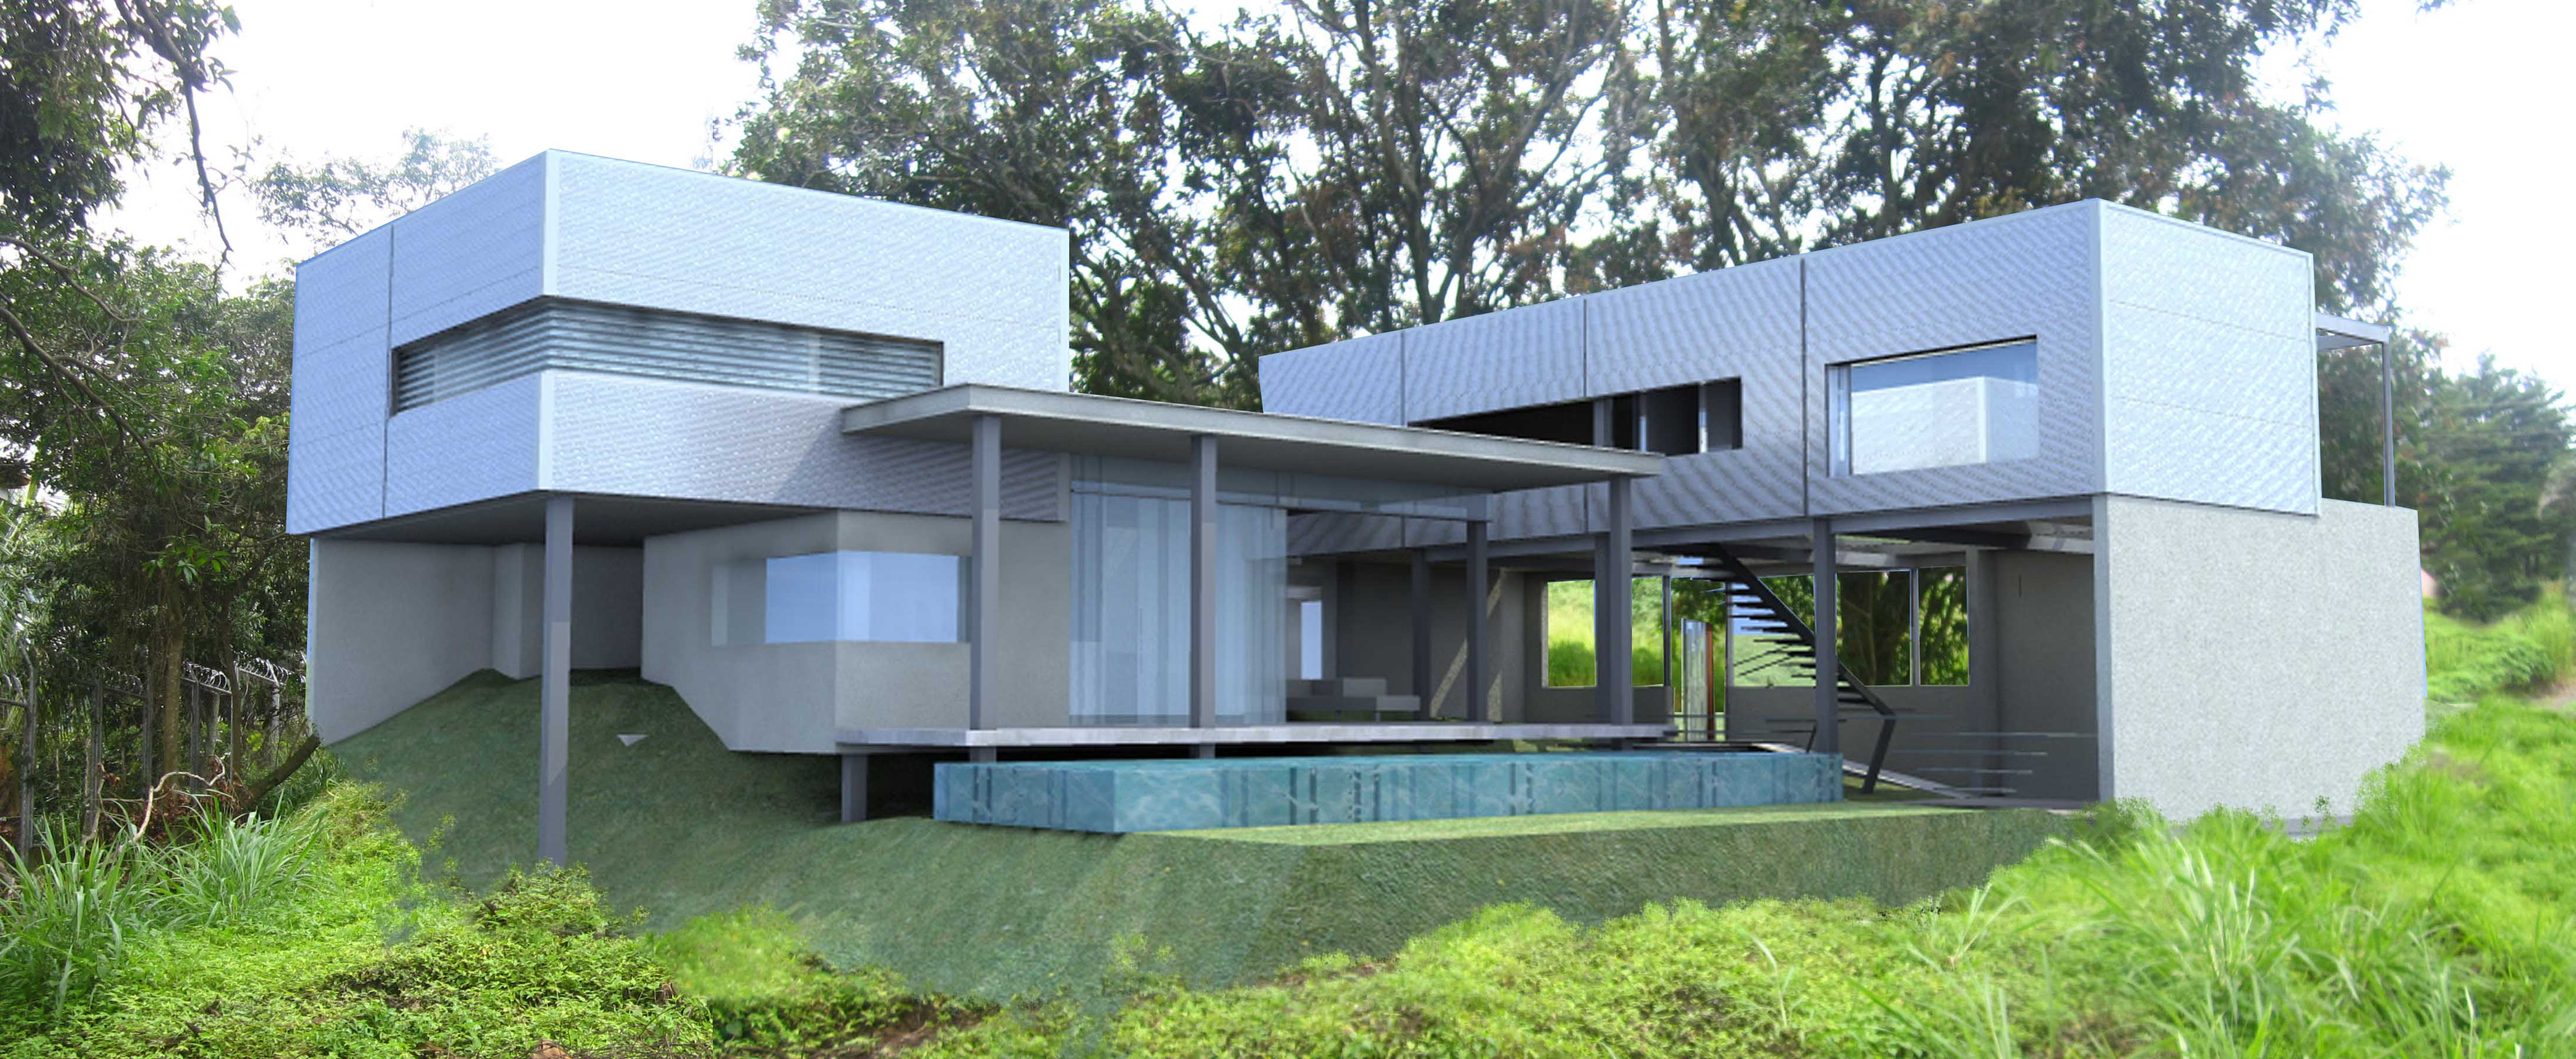 all about steel frame building in costa rica dott architecture rh dottarchitecture com Middle Class Homes in Costa Rica Costa Rica Houses